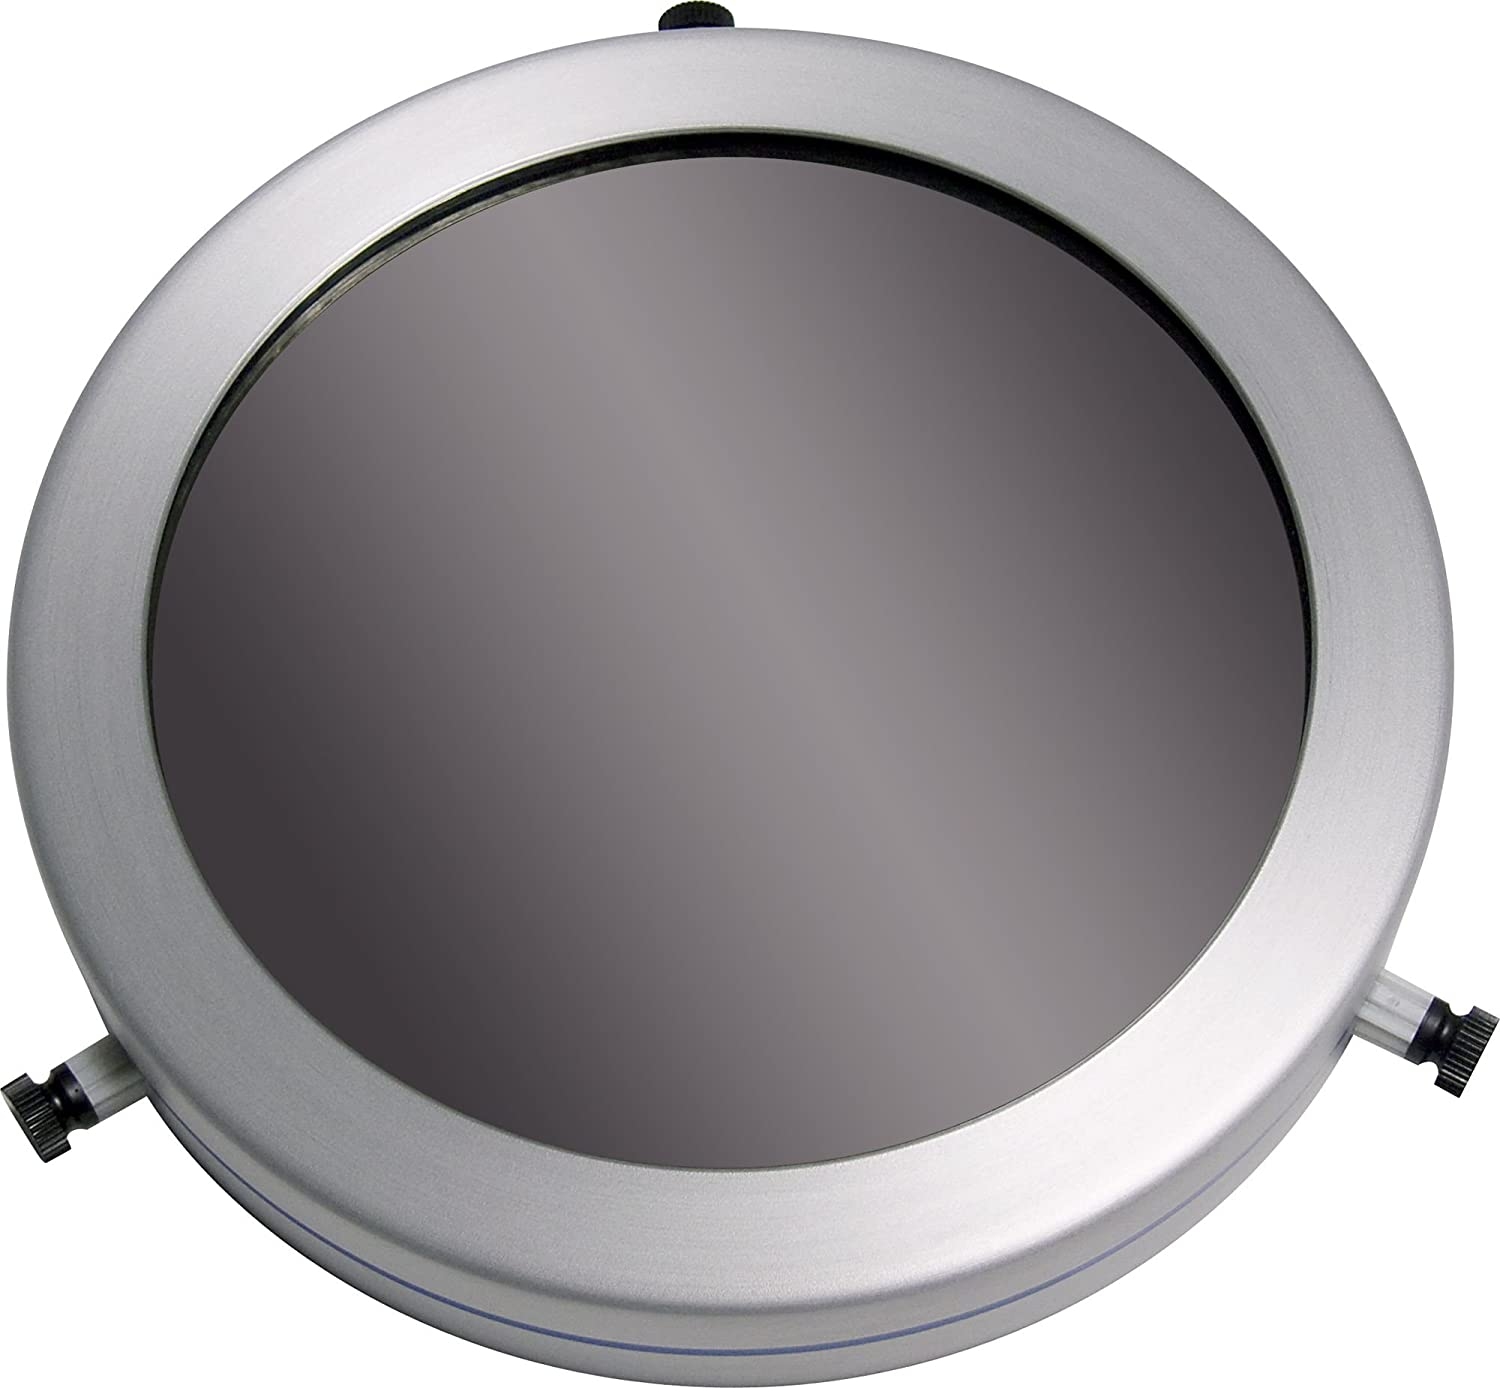 Orion 07737 6.58-Inch ID Full Aperture Glass Telescope Solar Filter (Silver) Optronic Technologies